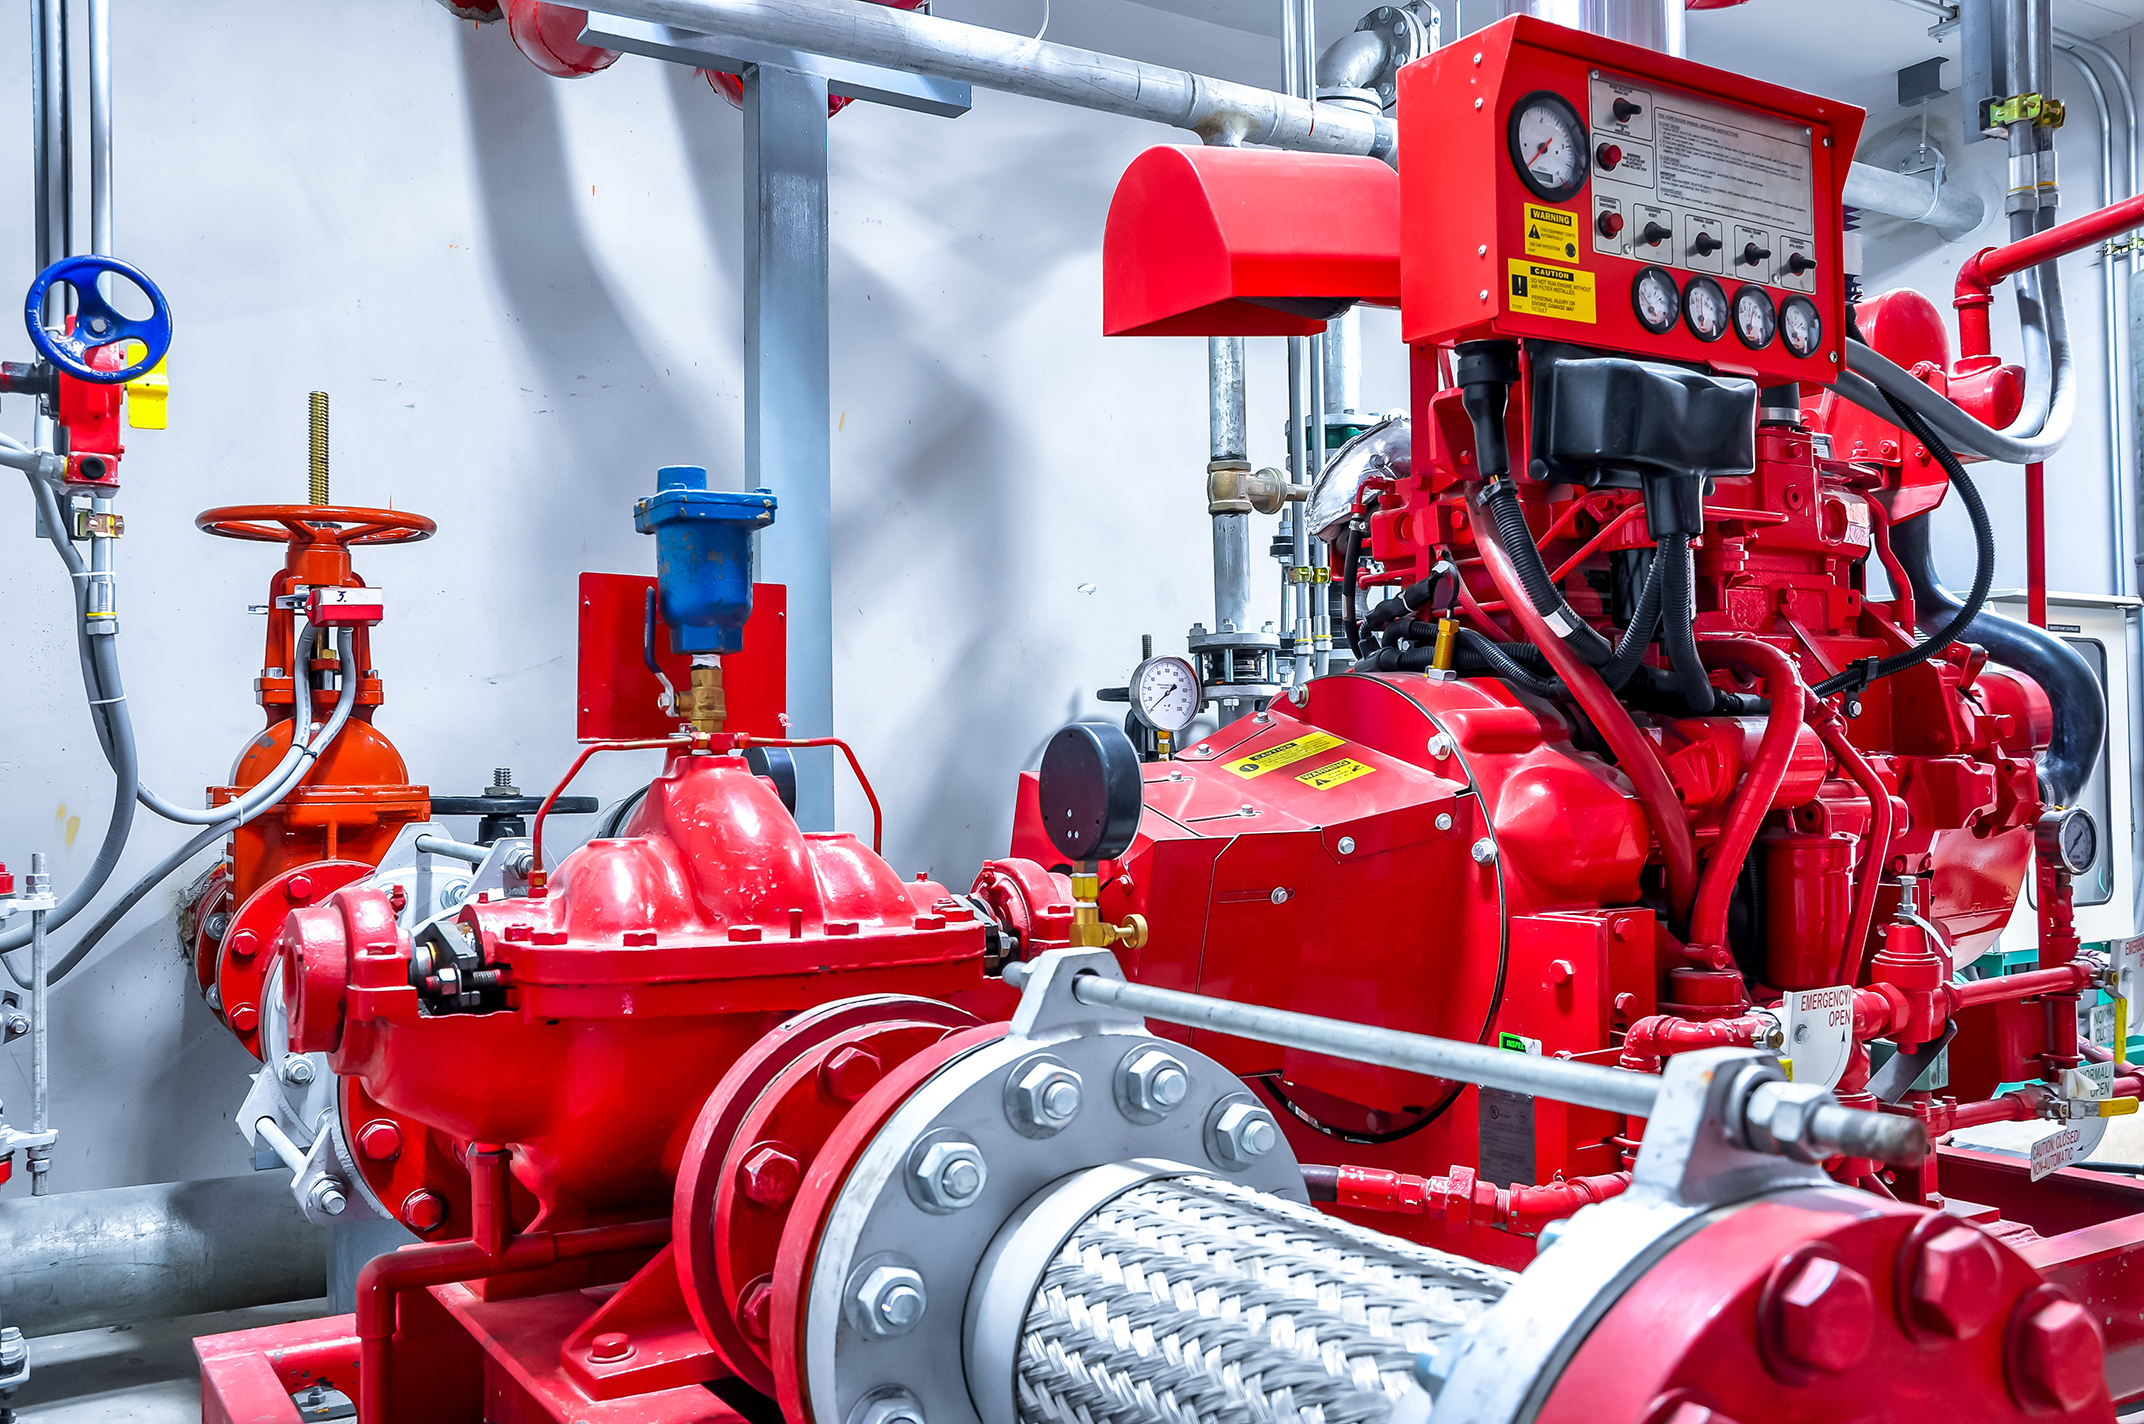 Emerson Fire Suppression Emerson Us